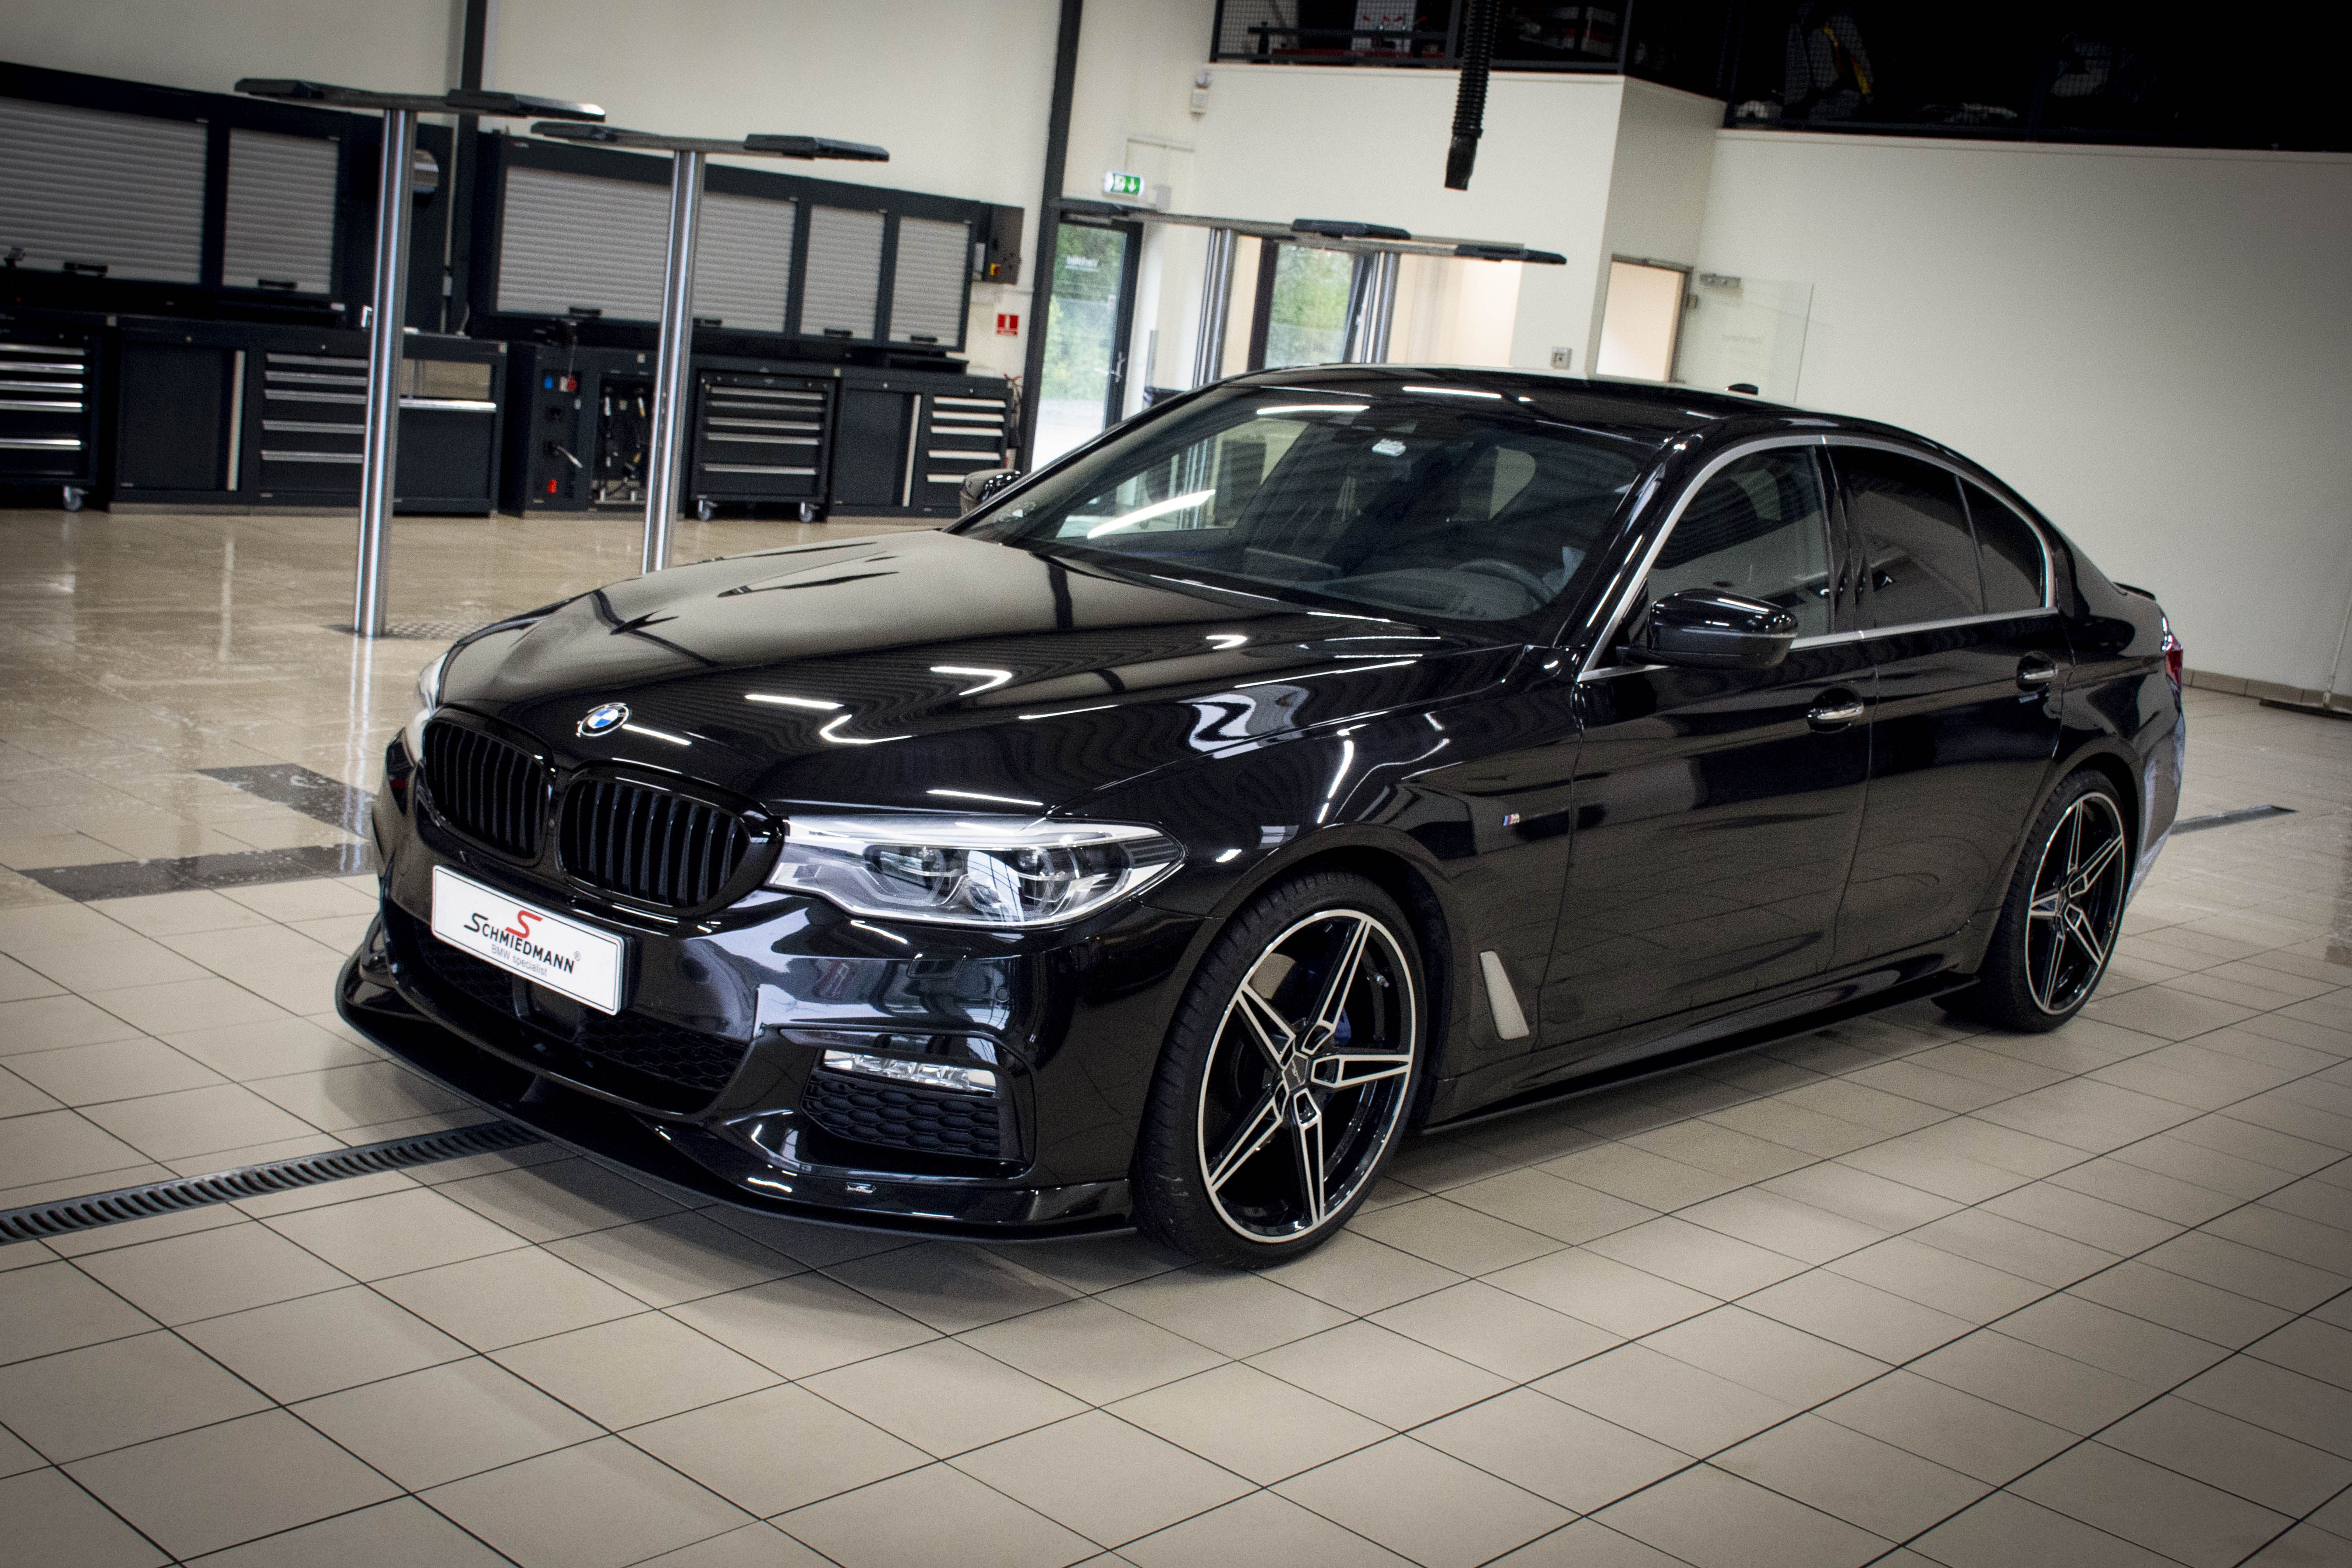 The Final Result Of The Black 5 Series Bmw G30 530d B57 Car From